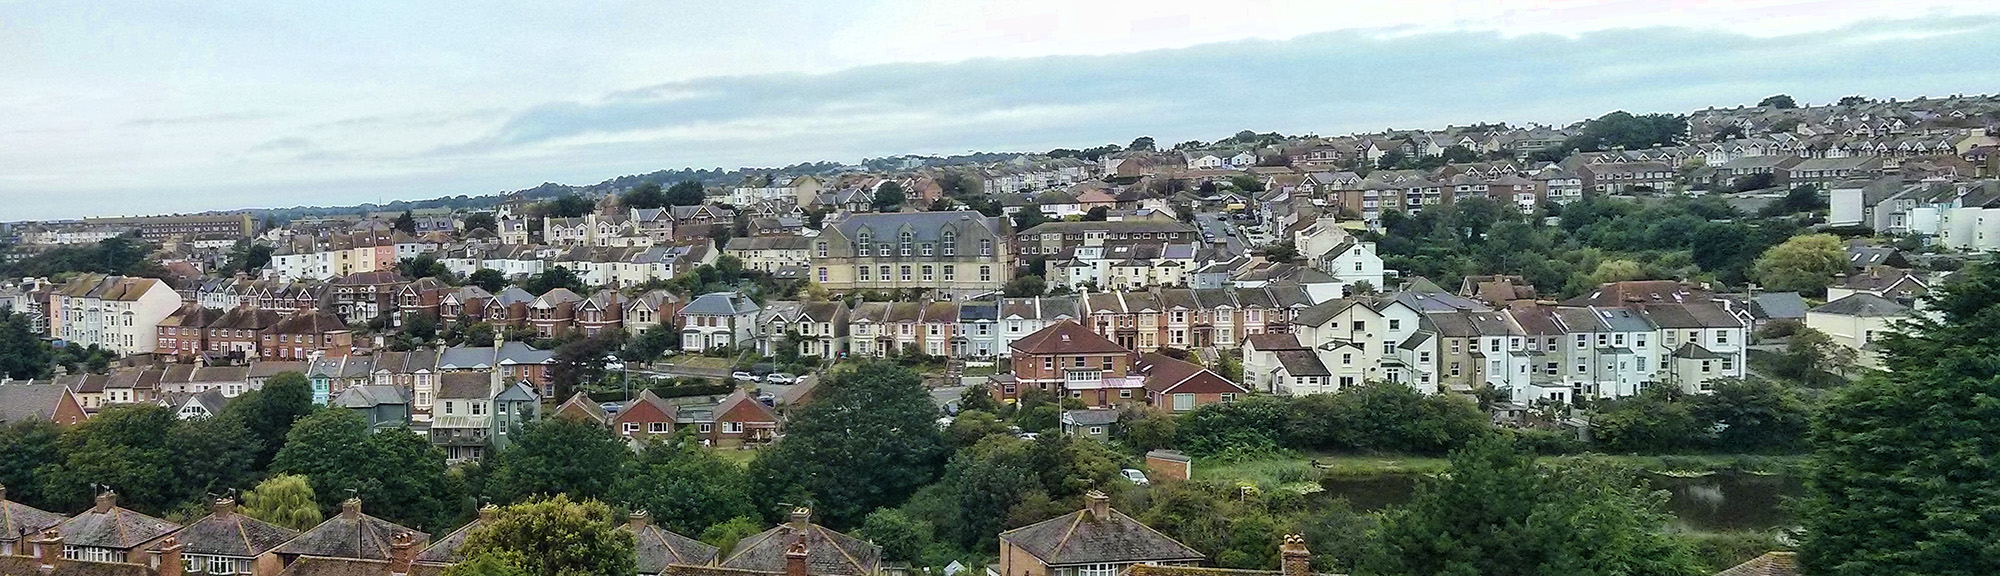 Hastings-pan-header